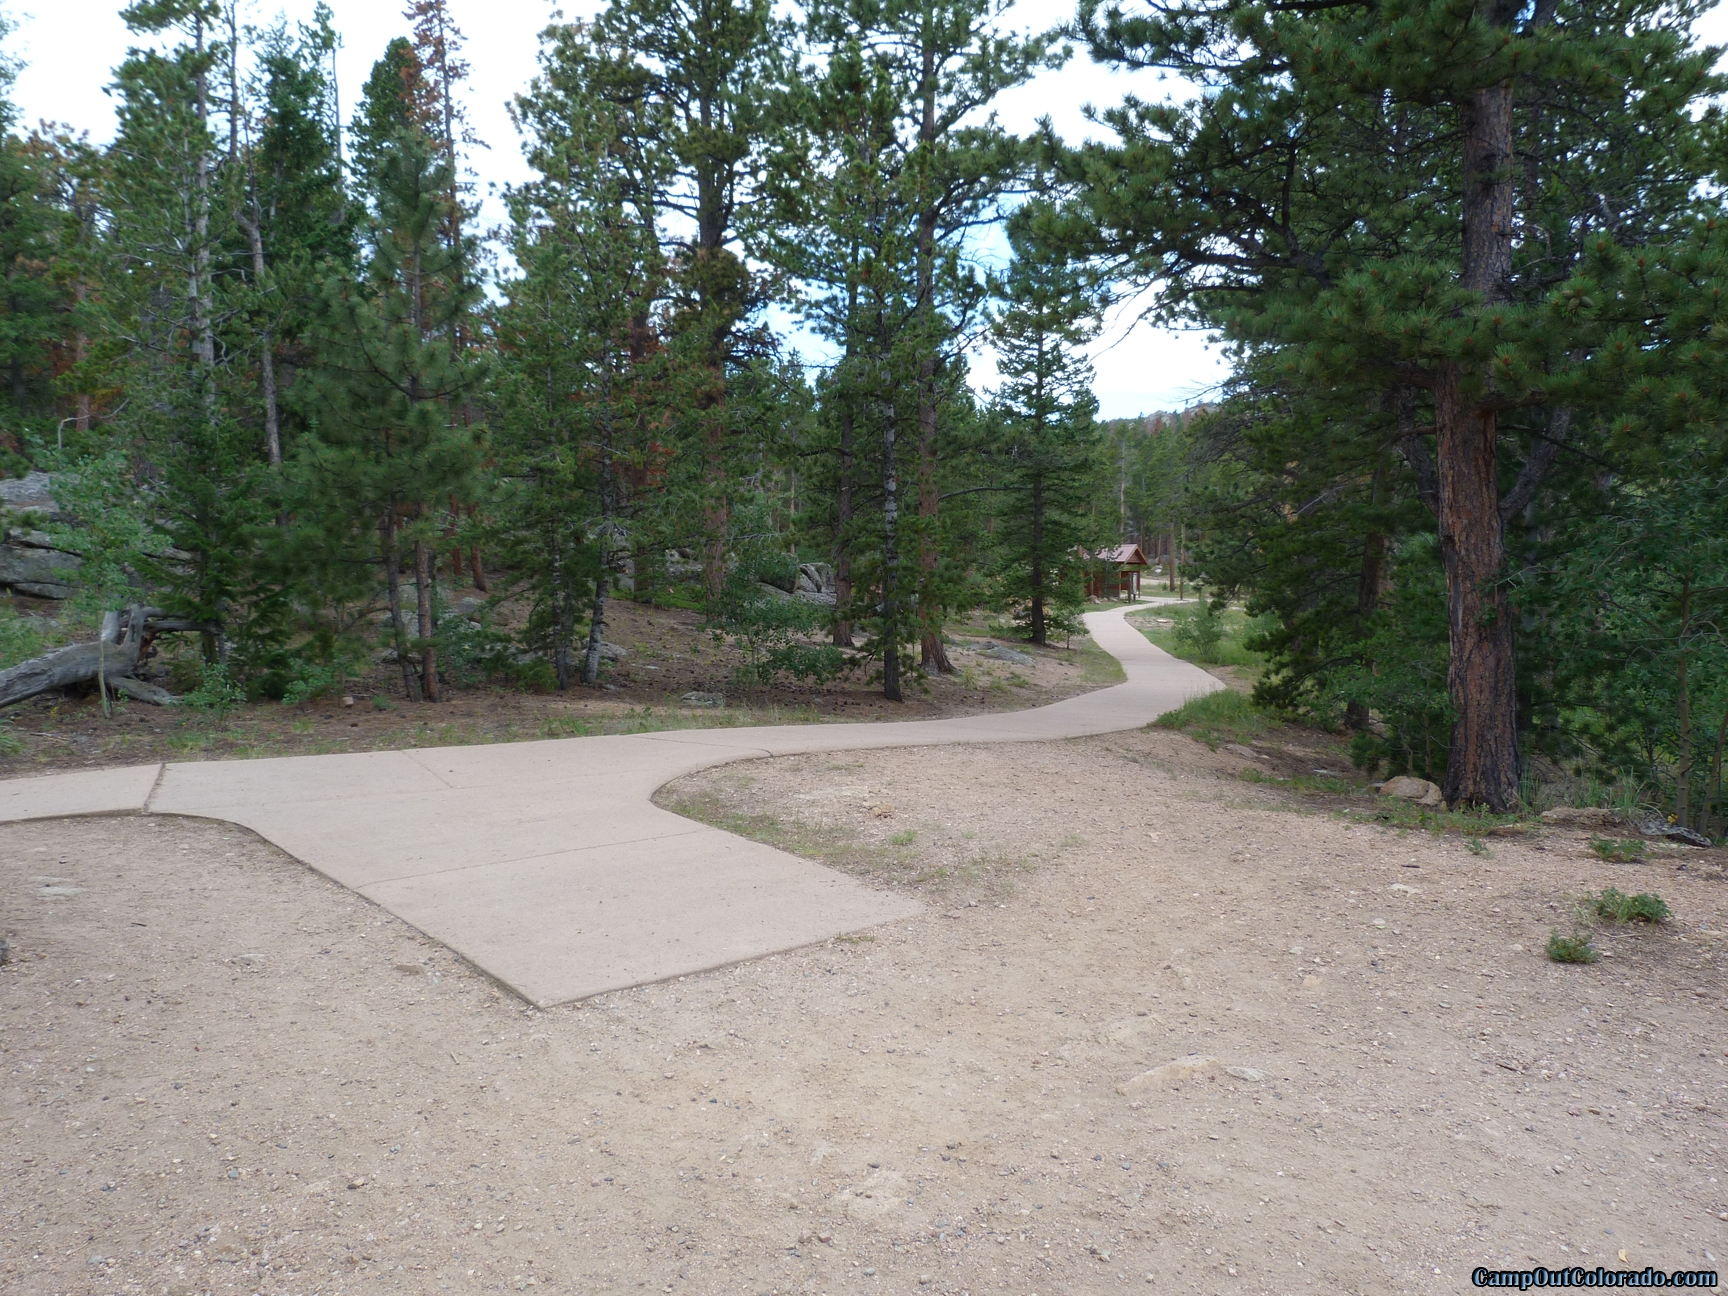 camp-out-colorado-bellaire-lake-path-to-campground